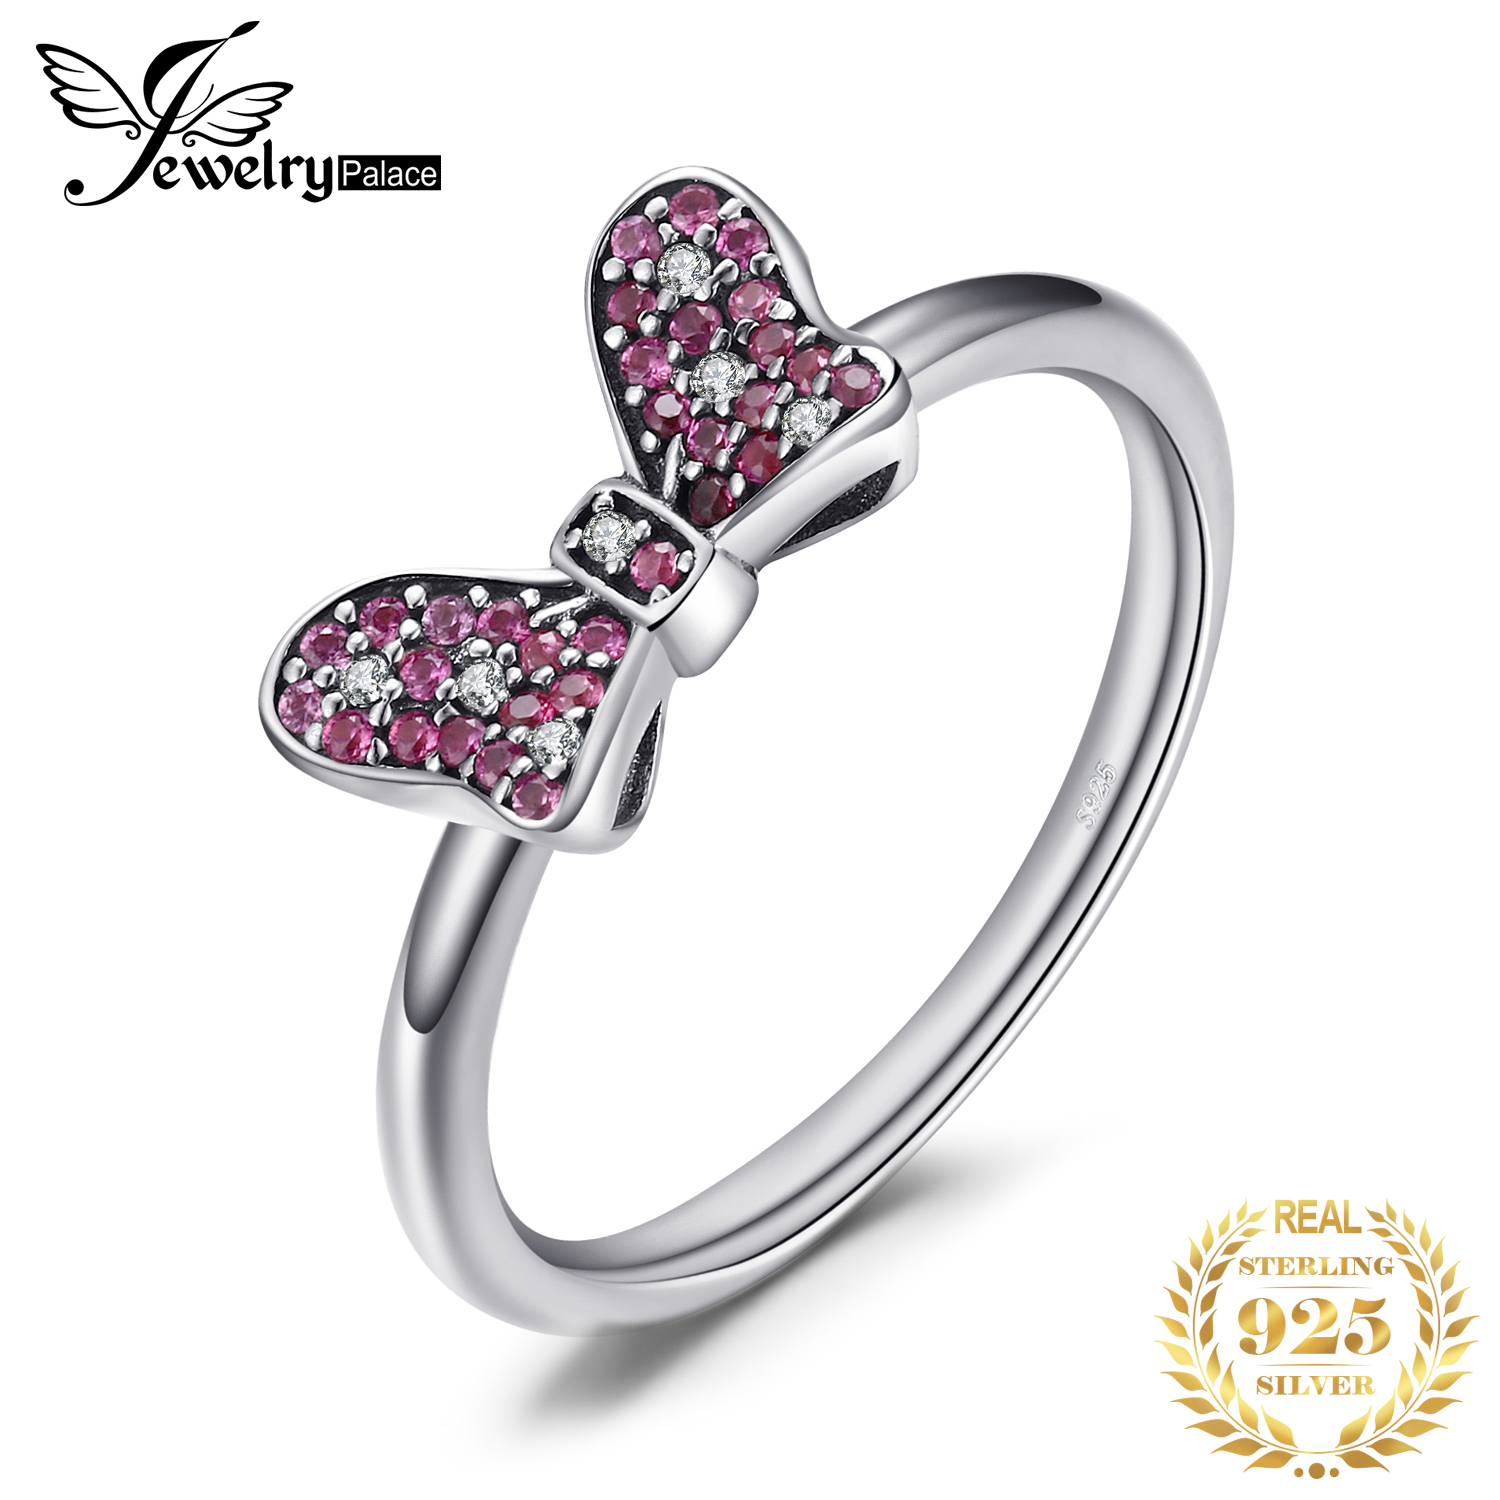 JewelryPalace 925 Sterling Silver GLiter ButterfLy Knot Beautiful Ring Gifts For Her Anniversary Fashion Jewelry New Arrival